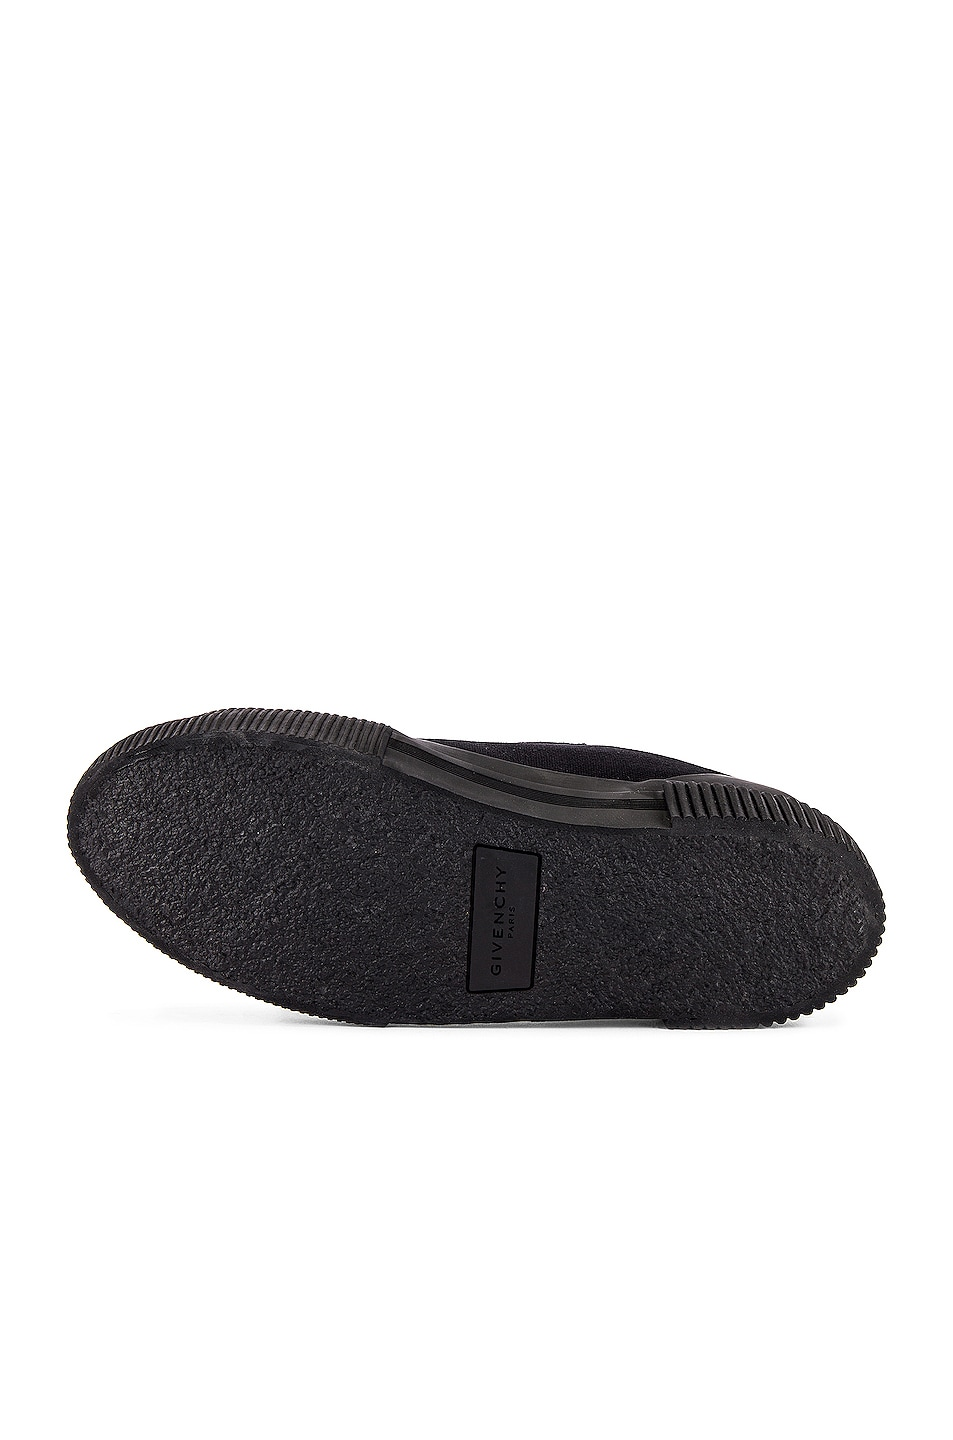 Image 6 of Givenchy Tennis Light Low Sneaker in Multi